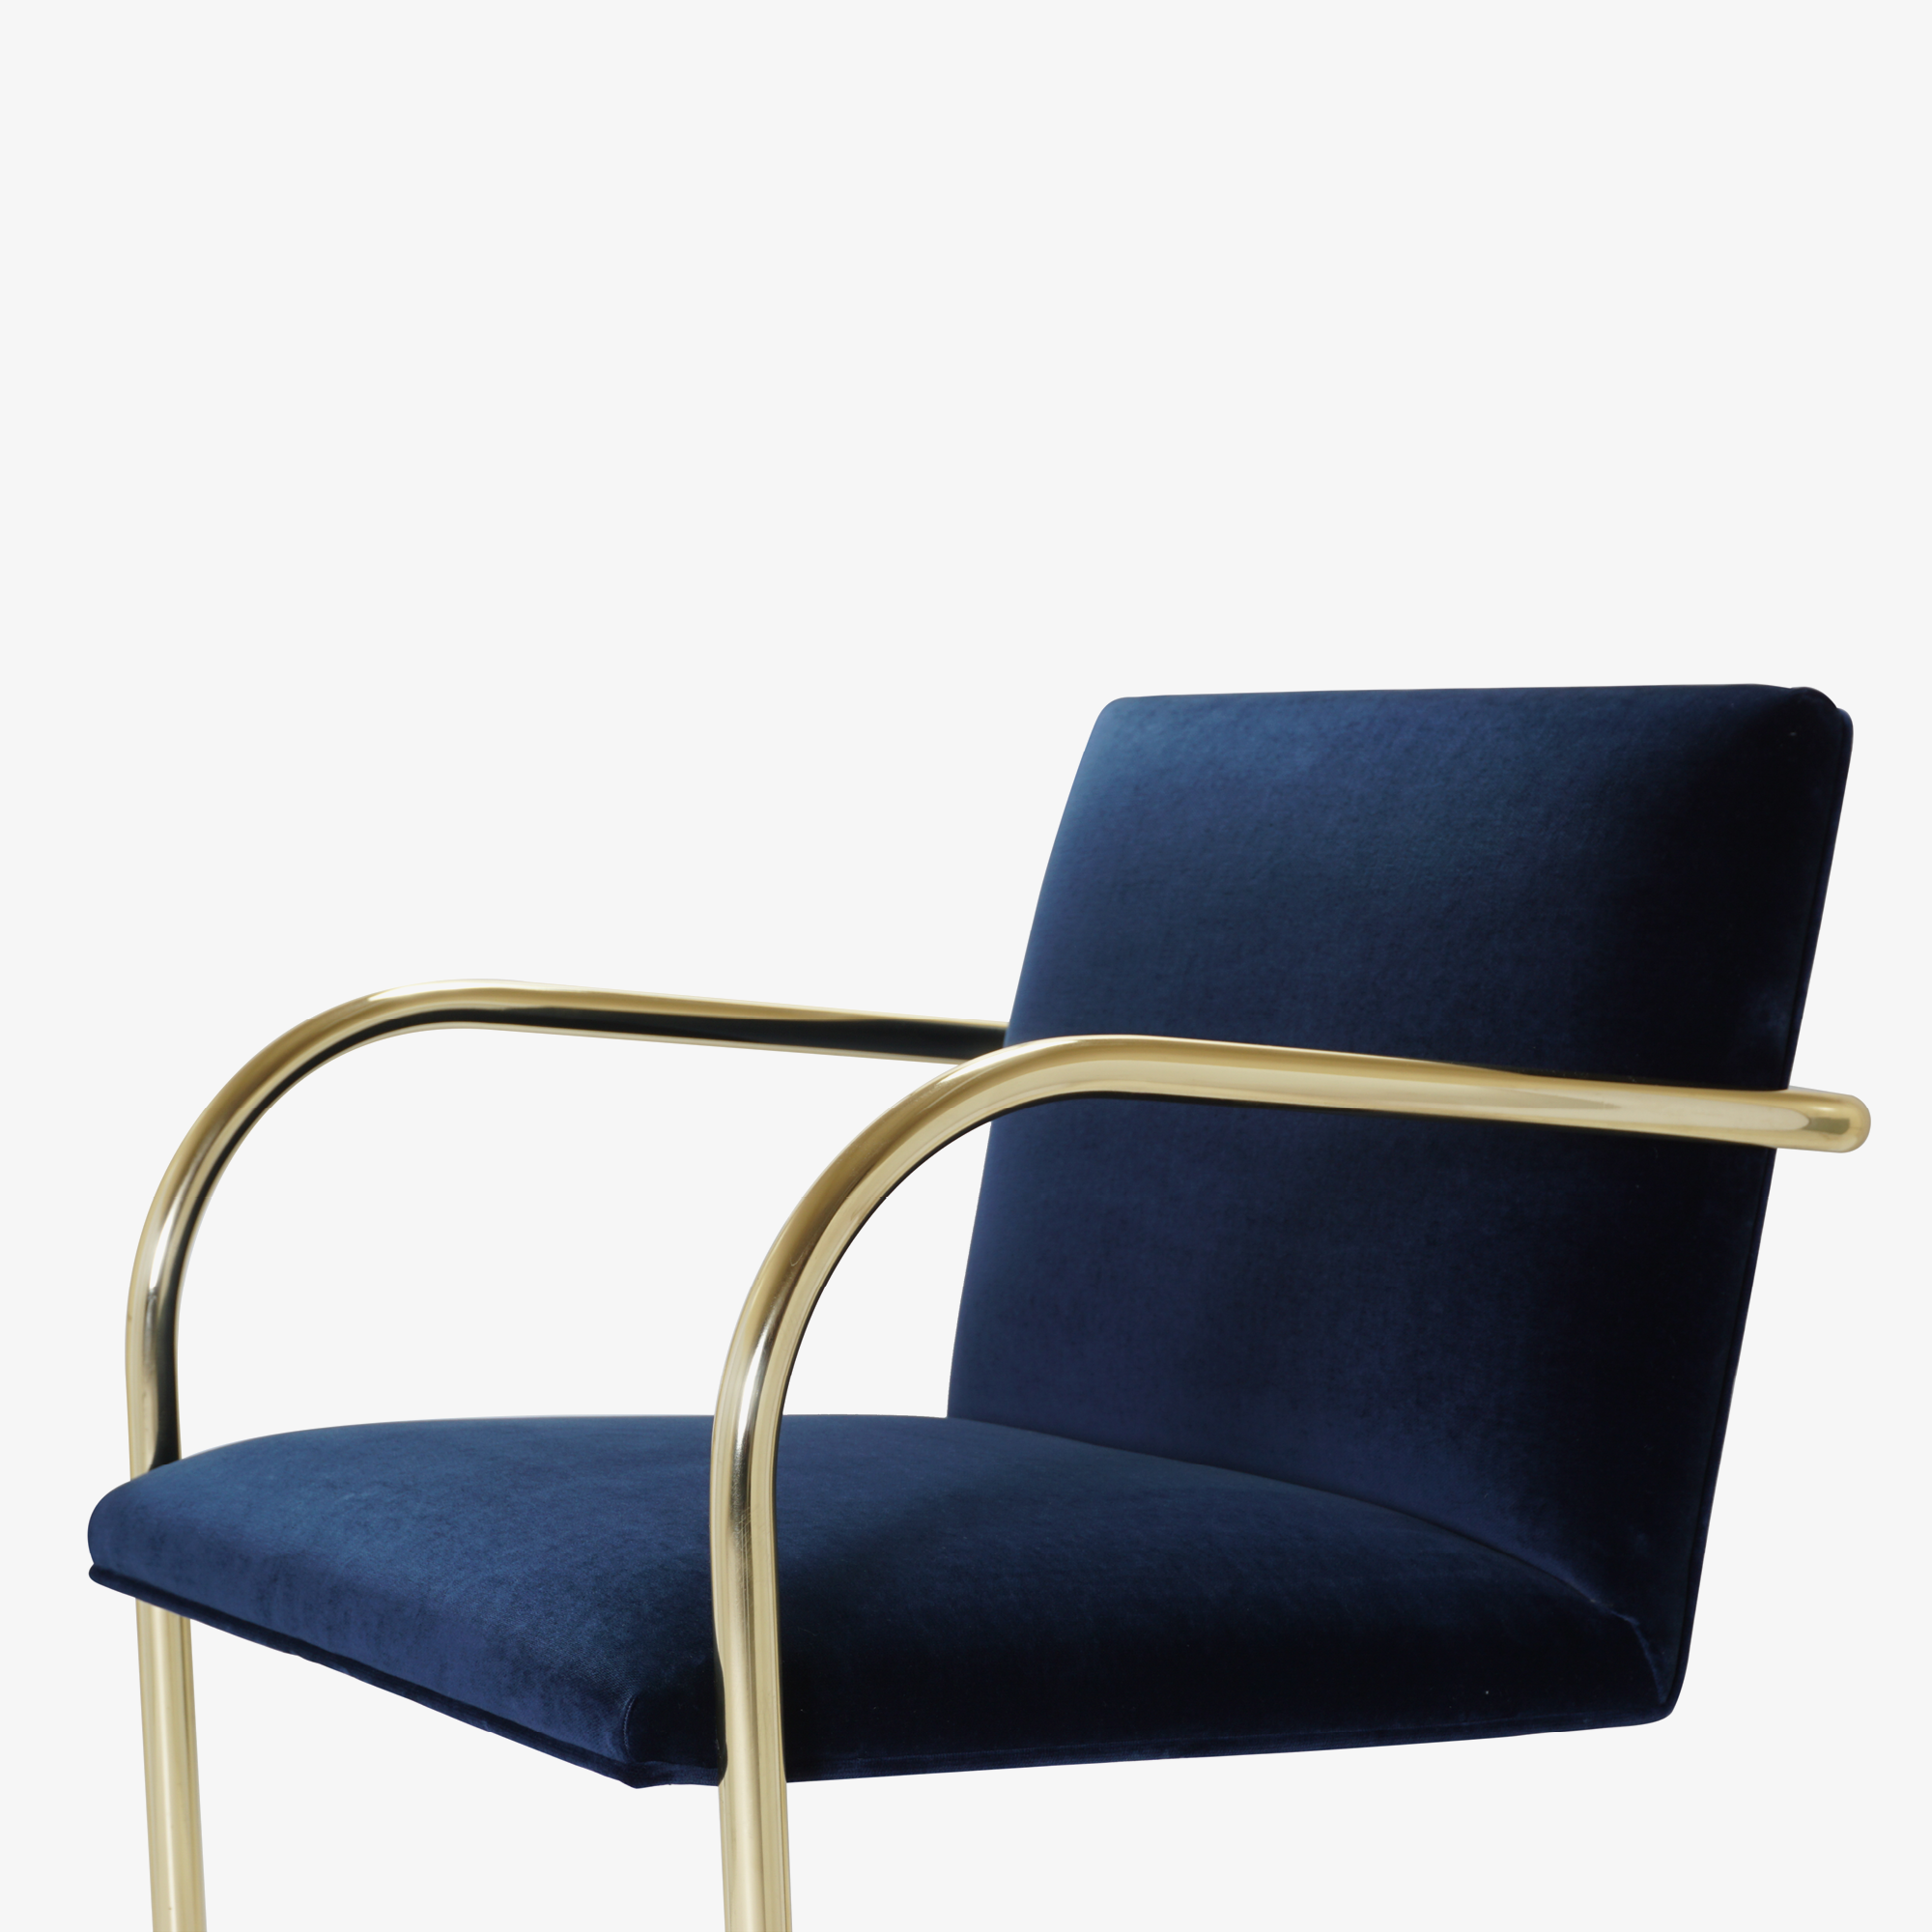 Brno Tubular Chair in Velvet, Polished Brass7.png